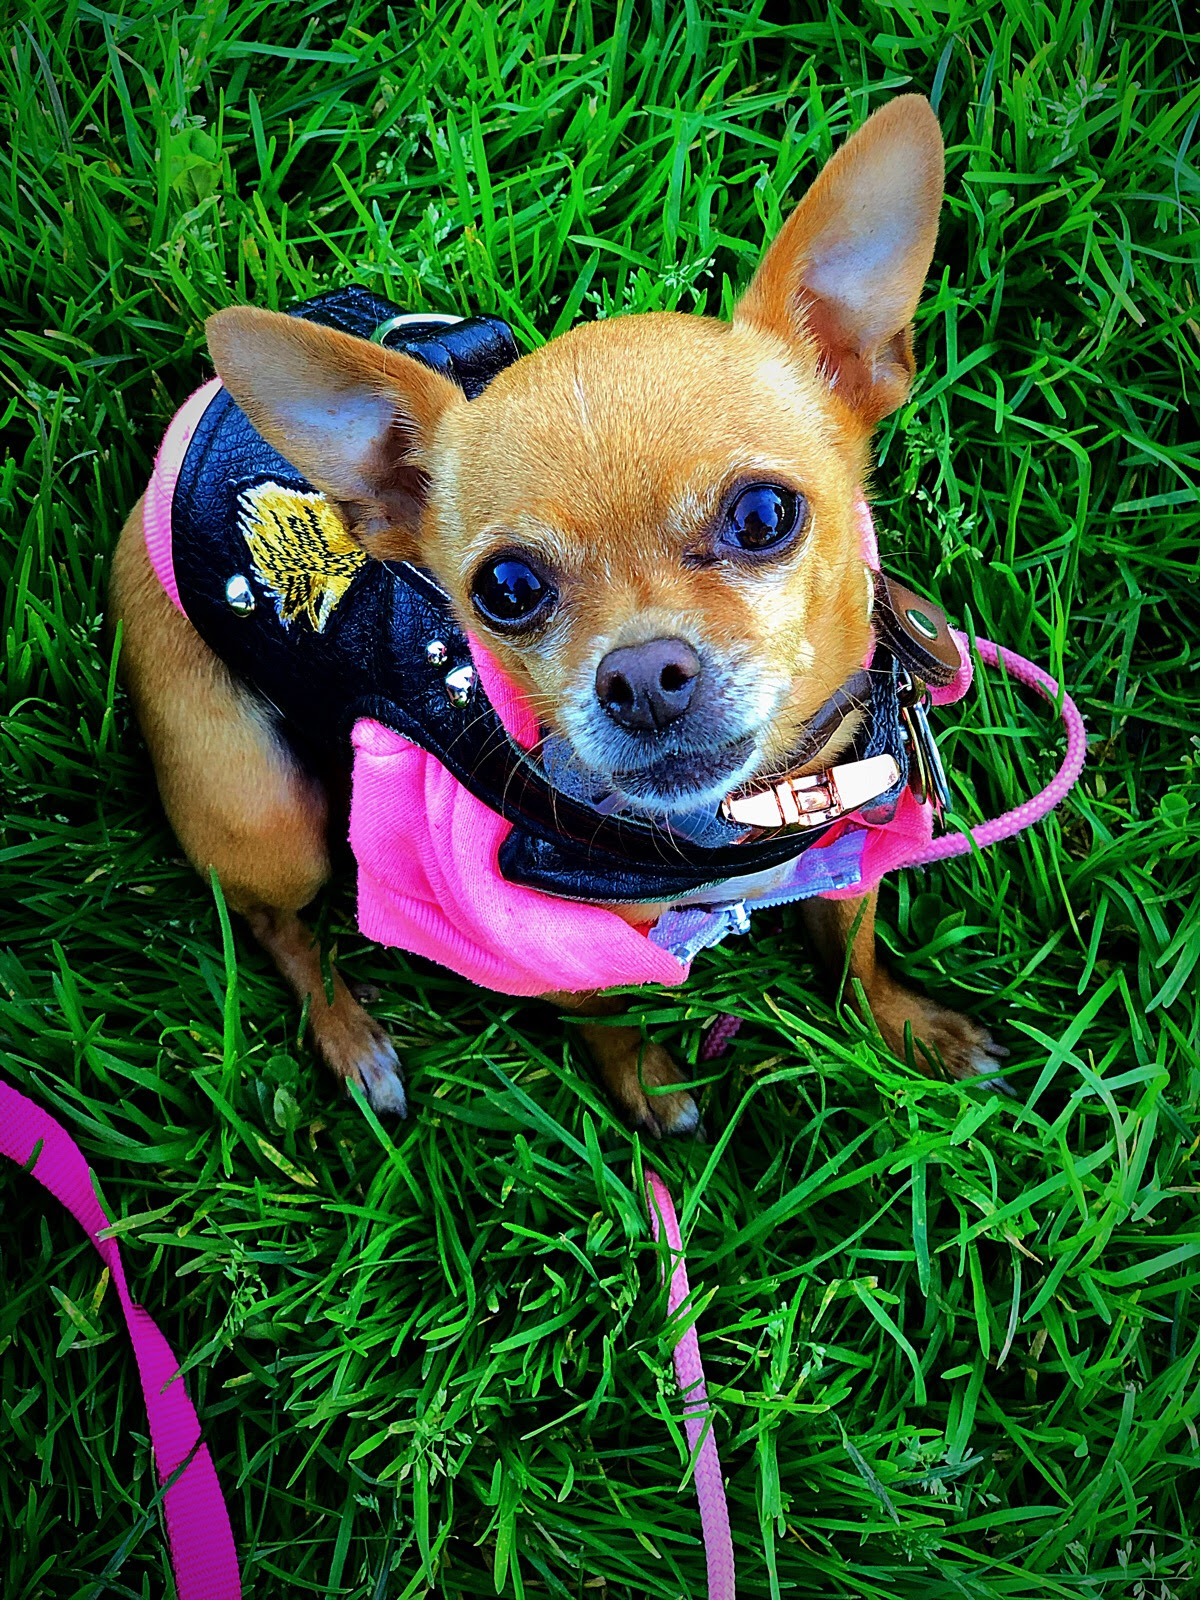 GRETA TINY DANCER - BREED: Teacup Chihuahua | RESCUED, Grateful Dogs Rescue (SF, CA)AGE: 7 yearsLOVES: snoozing in soft blankets, being warm, carrots, sweet potato fries, sunbathingHATES: clouds, cold, rain, anyone getting too close for comfort, unnecessary socializing